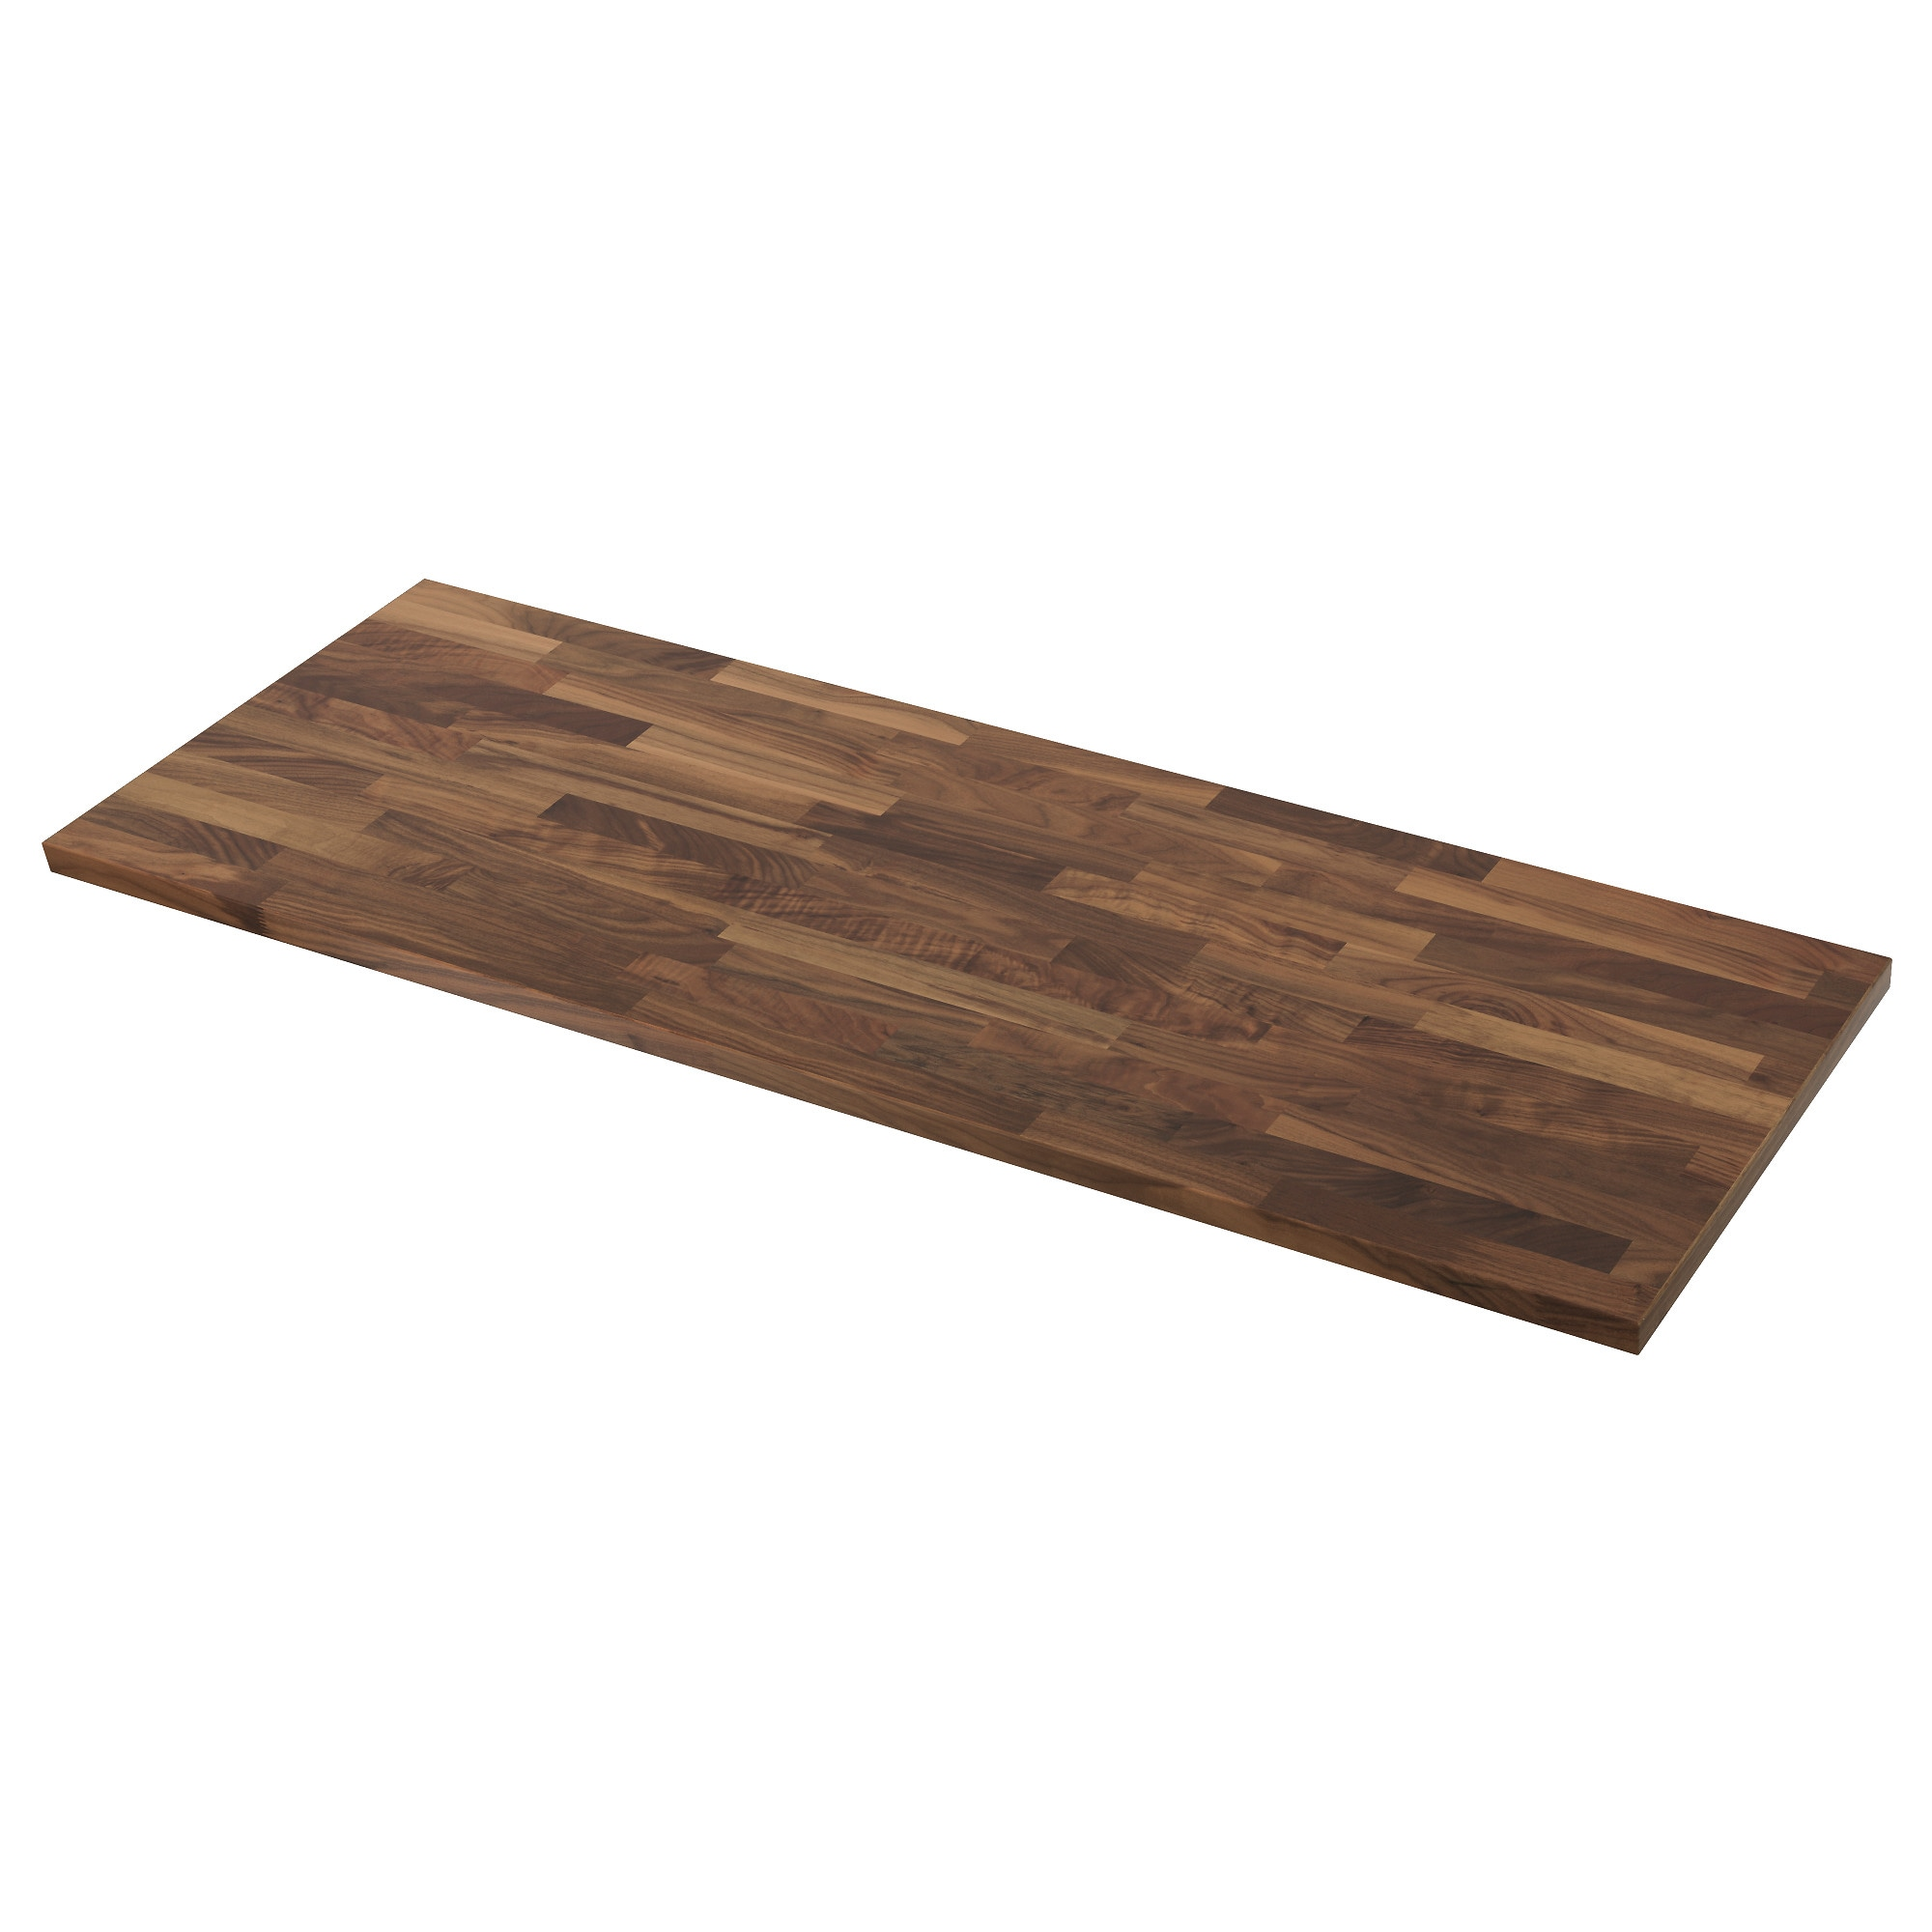 Karlby Countertop For Kitchen Island Walnut Length 74 Depth 42 Thickness